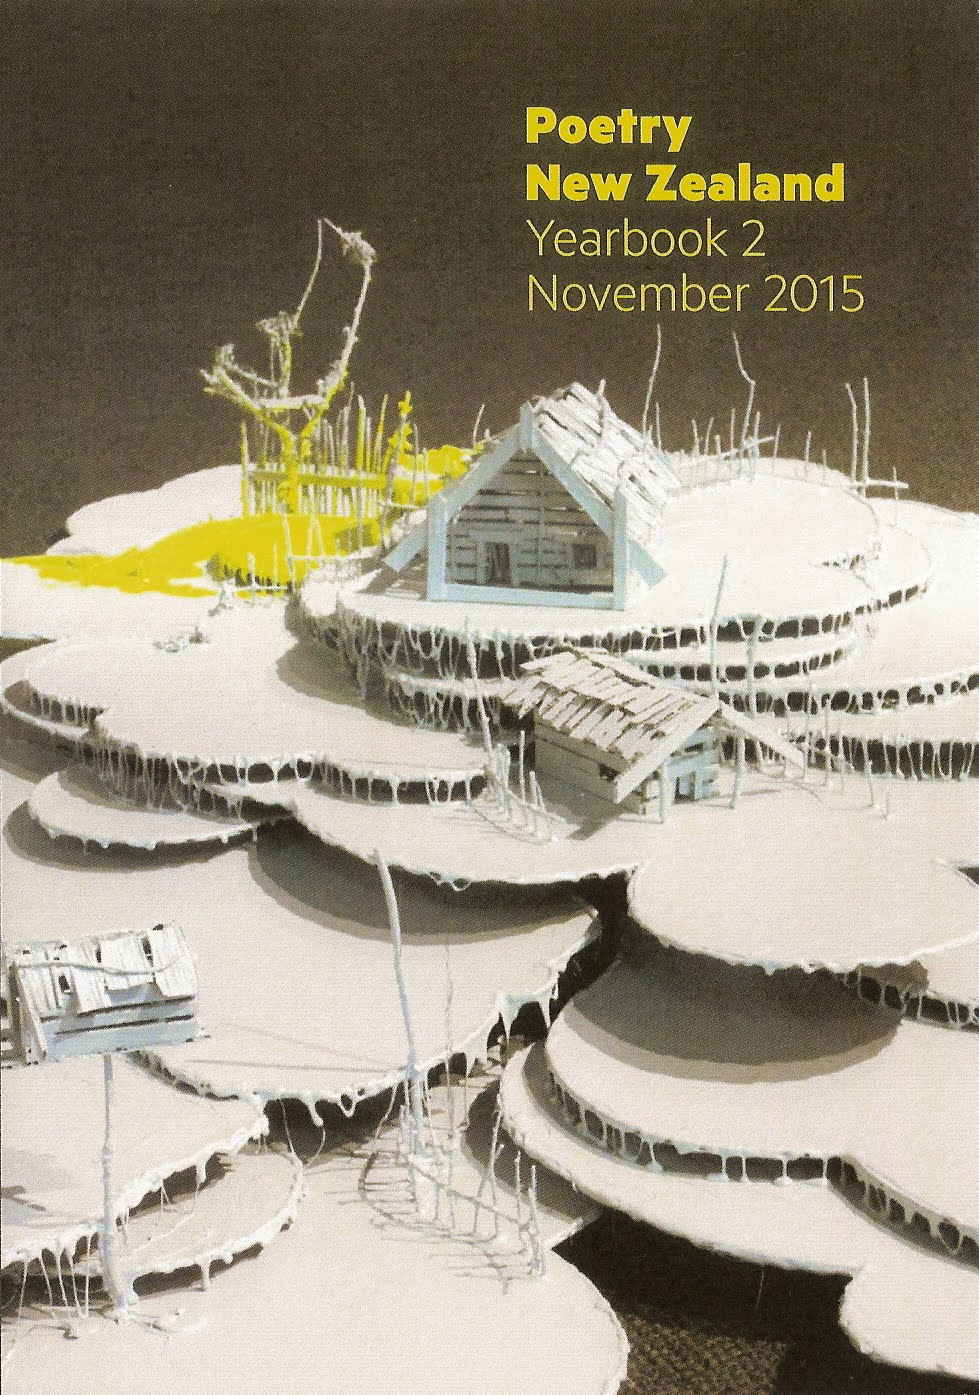 Poetry New Zealand Yearbook 2 (2015)